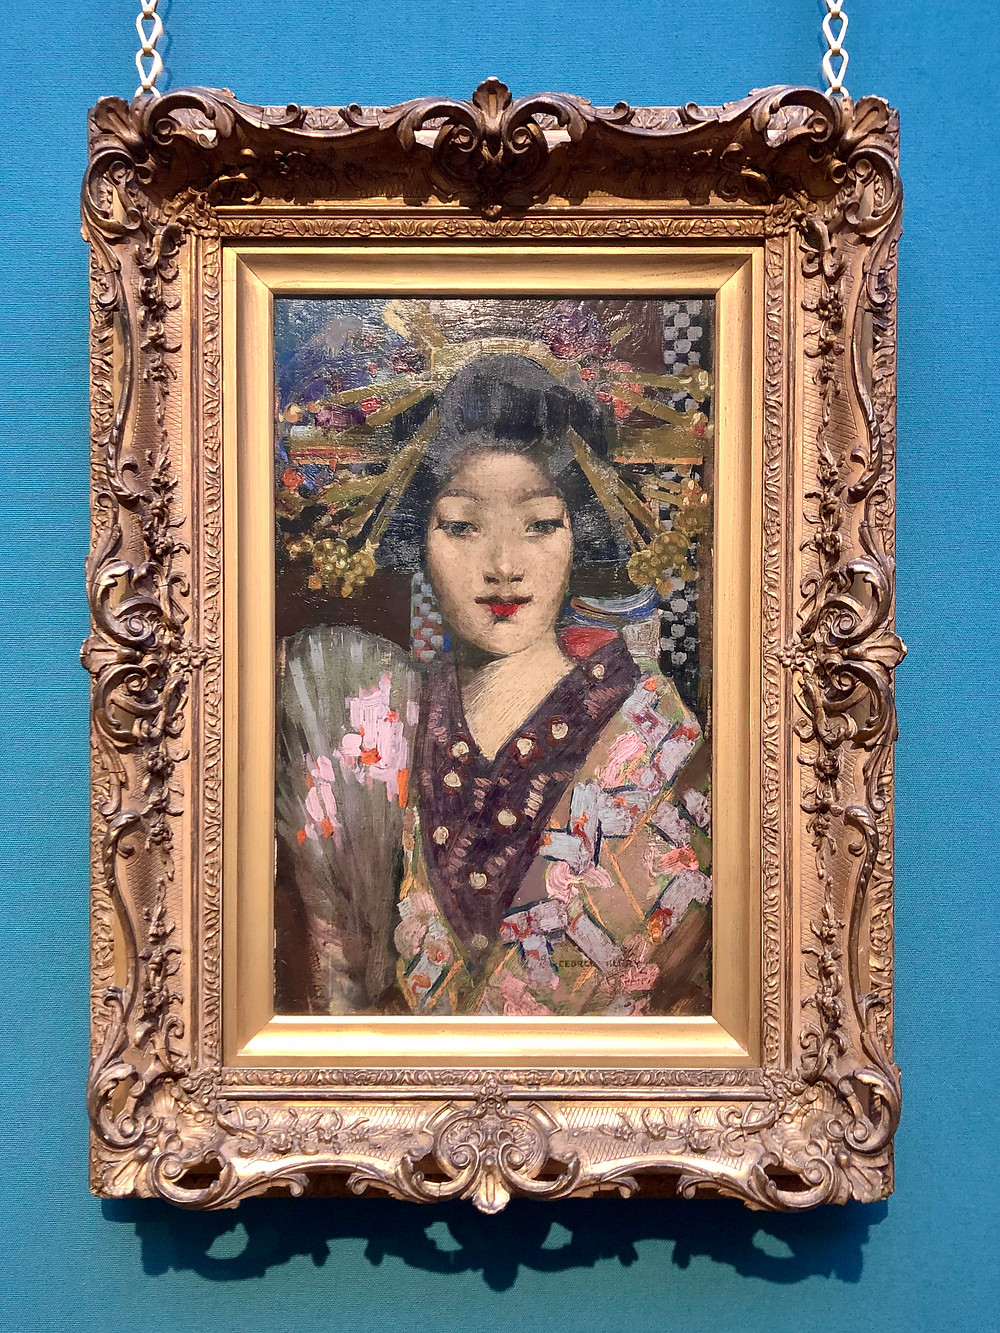 George Henry's Geisha Girl scottish national gallery japanese geisha girl